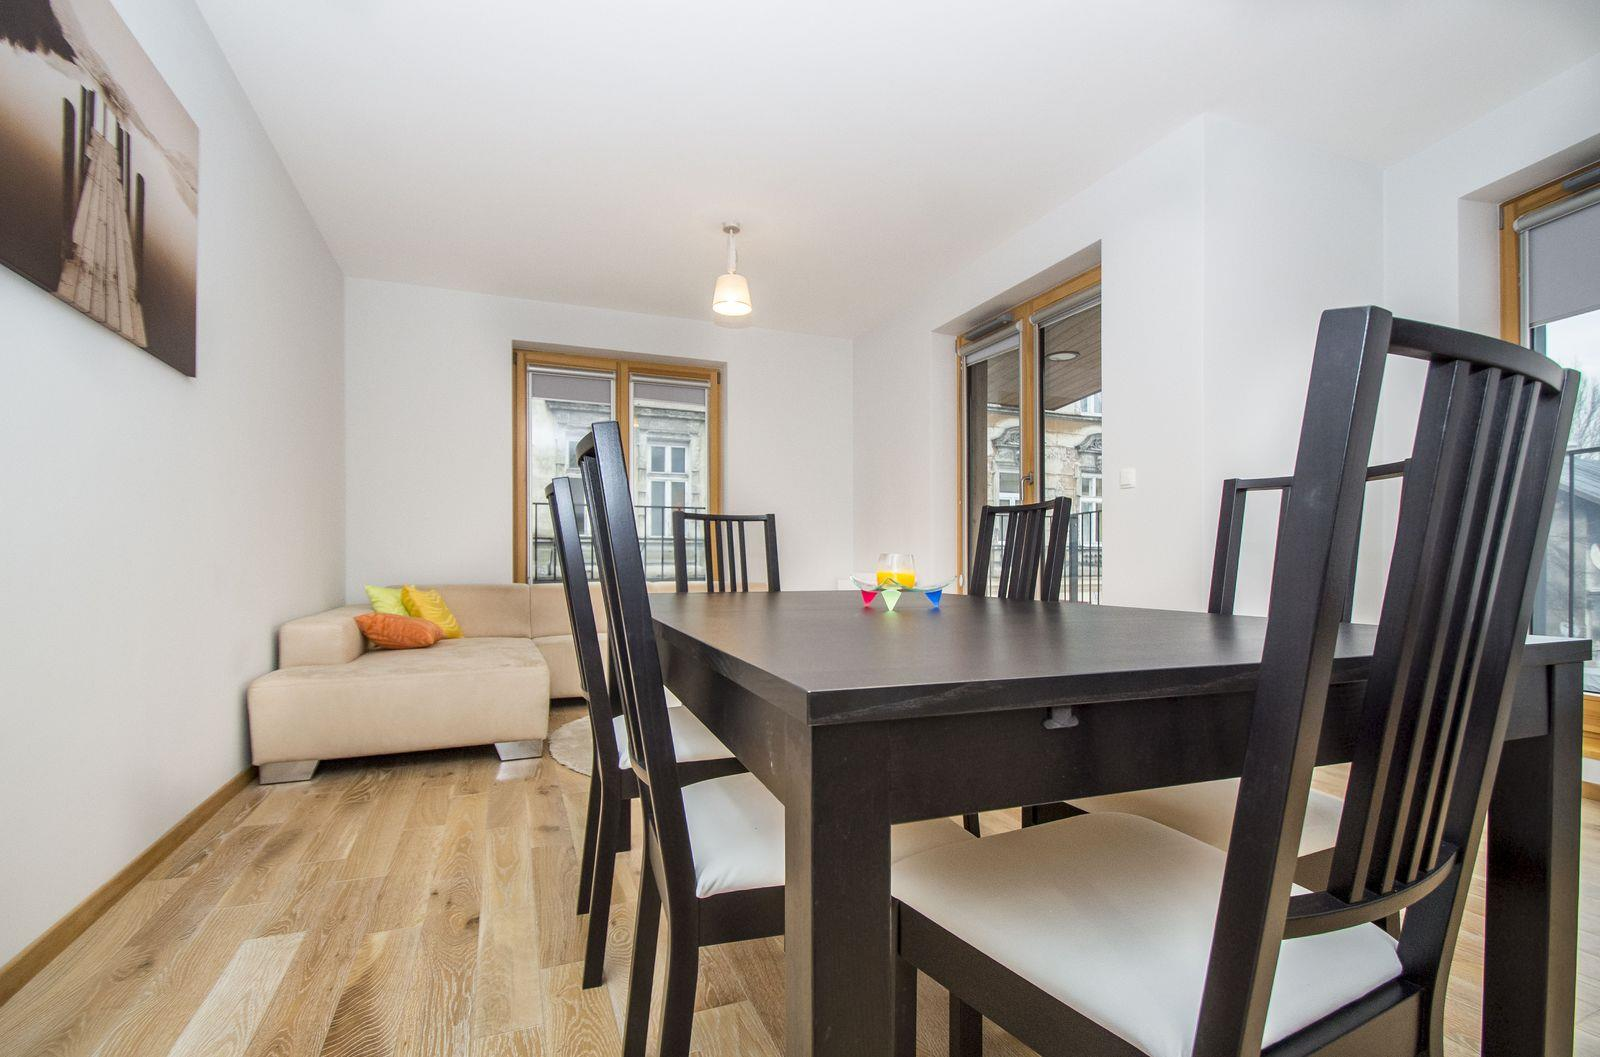 Guernsey (Metropolitan B) Apartment in Browar Lubicz in Krakow Old Town, Two bedroom apartment - LANDMARK APARTMENTS